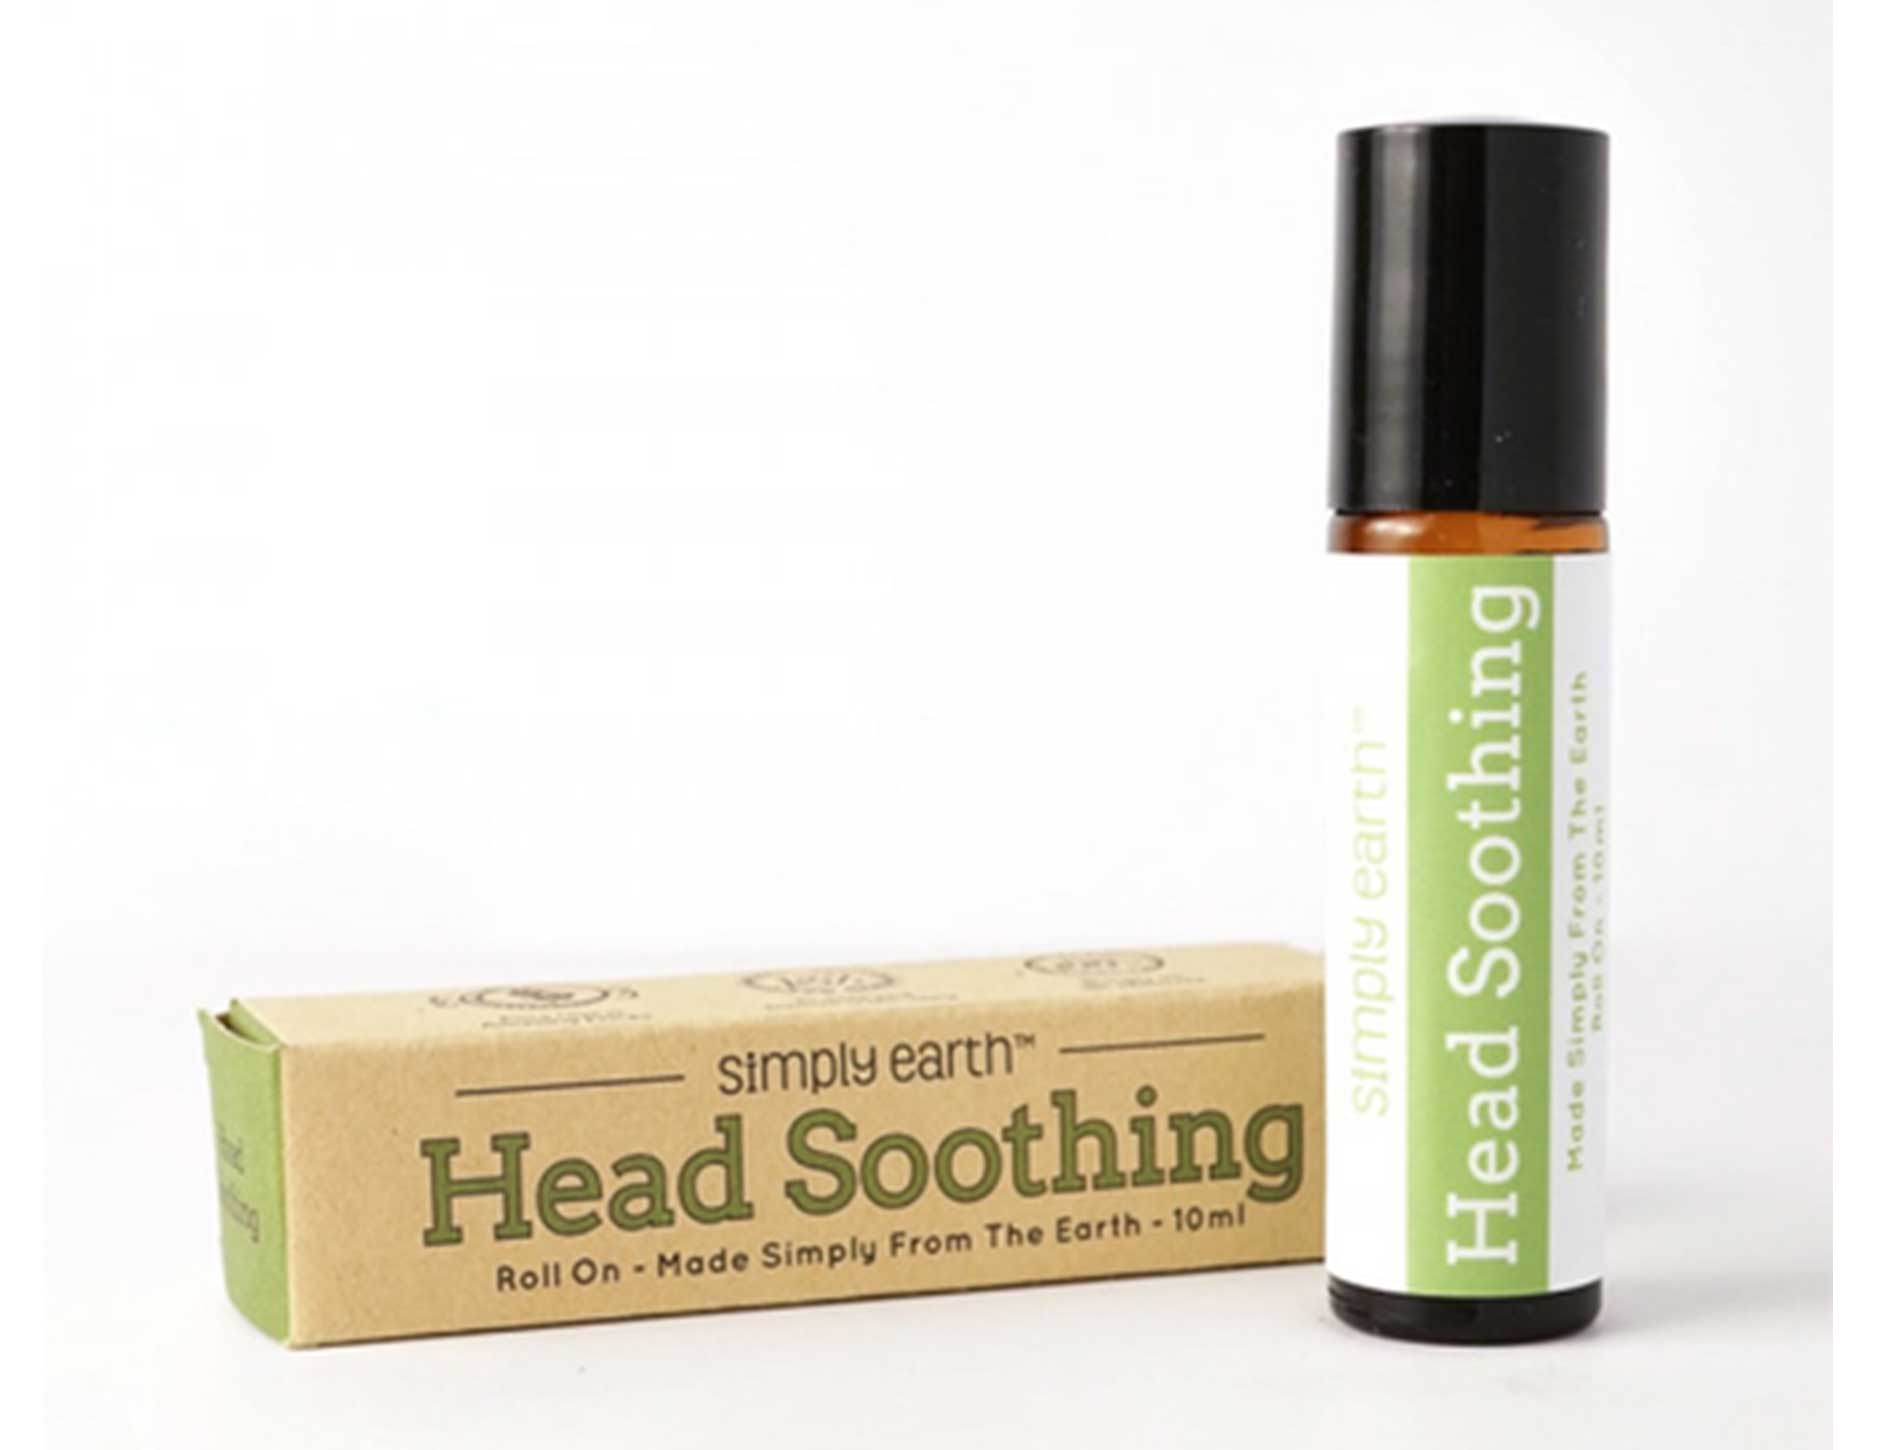 Simply Earth - Head Soothing Roll On Oil